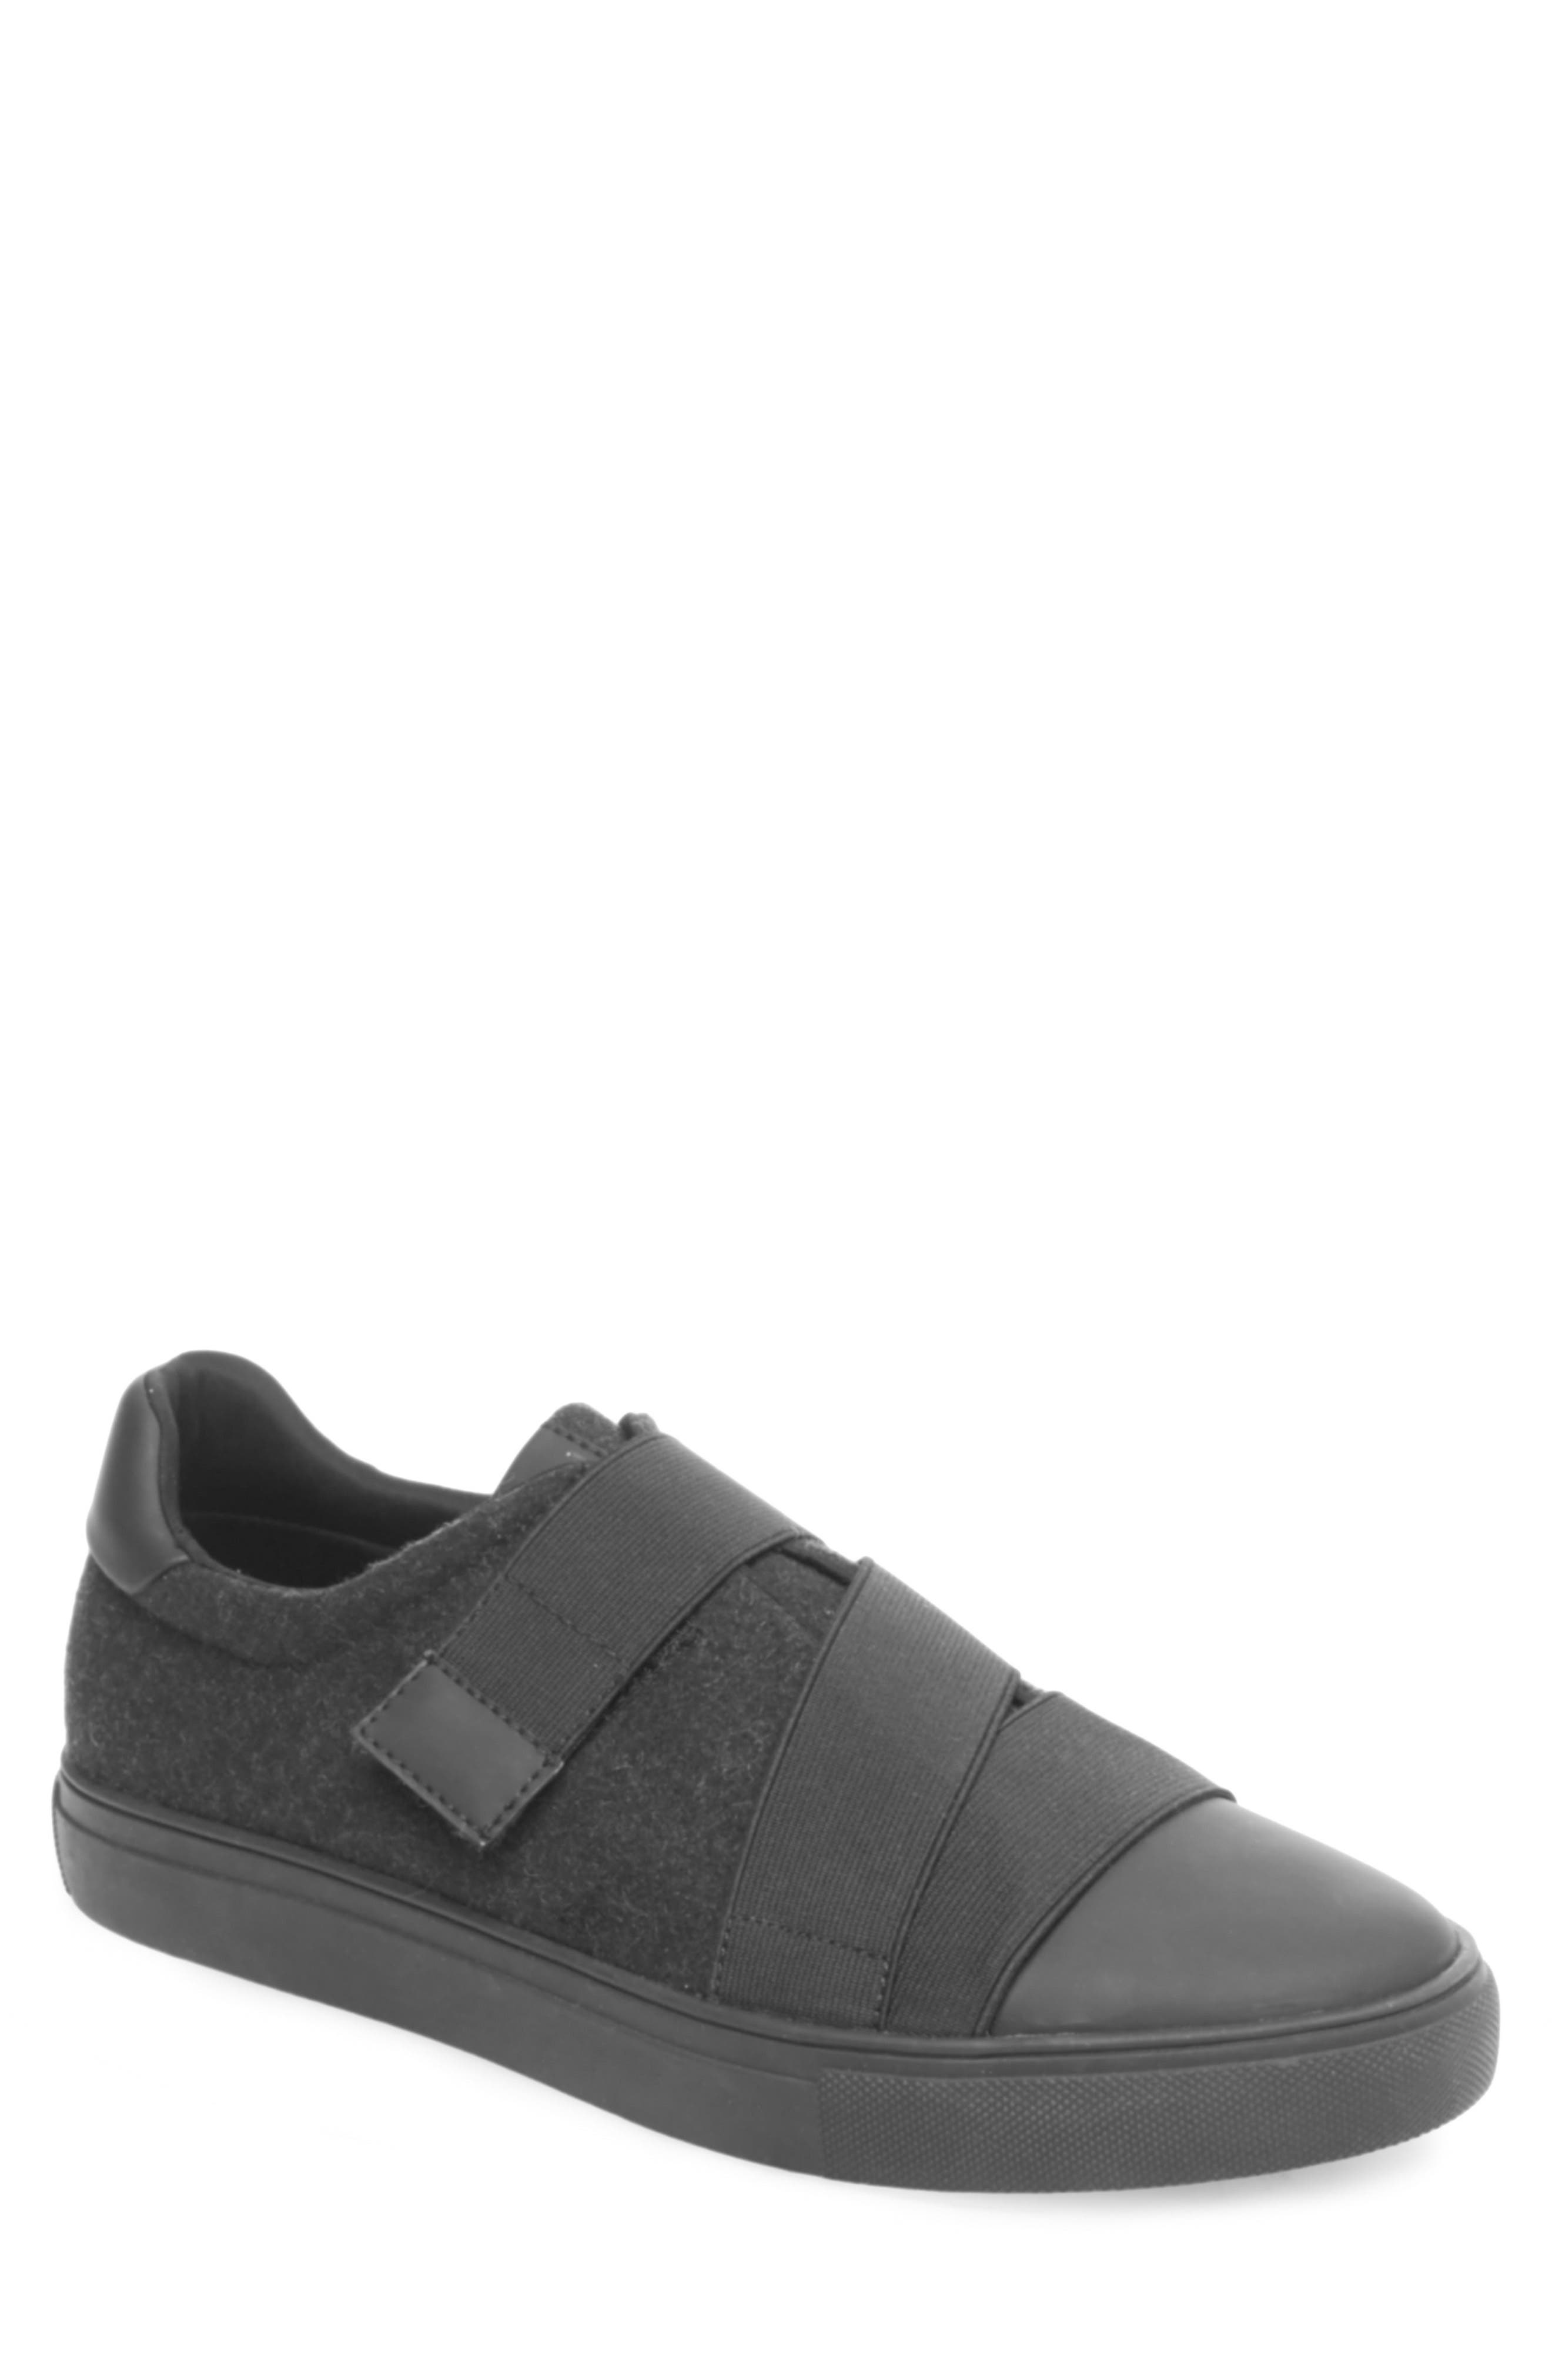 Westy Sneaker,                         Main,                         color, 002